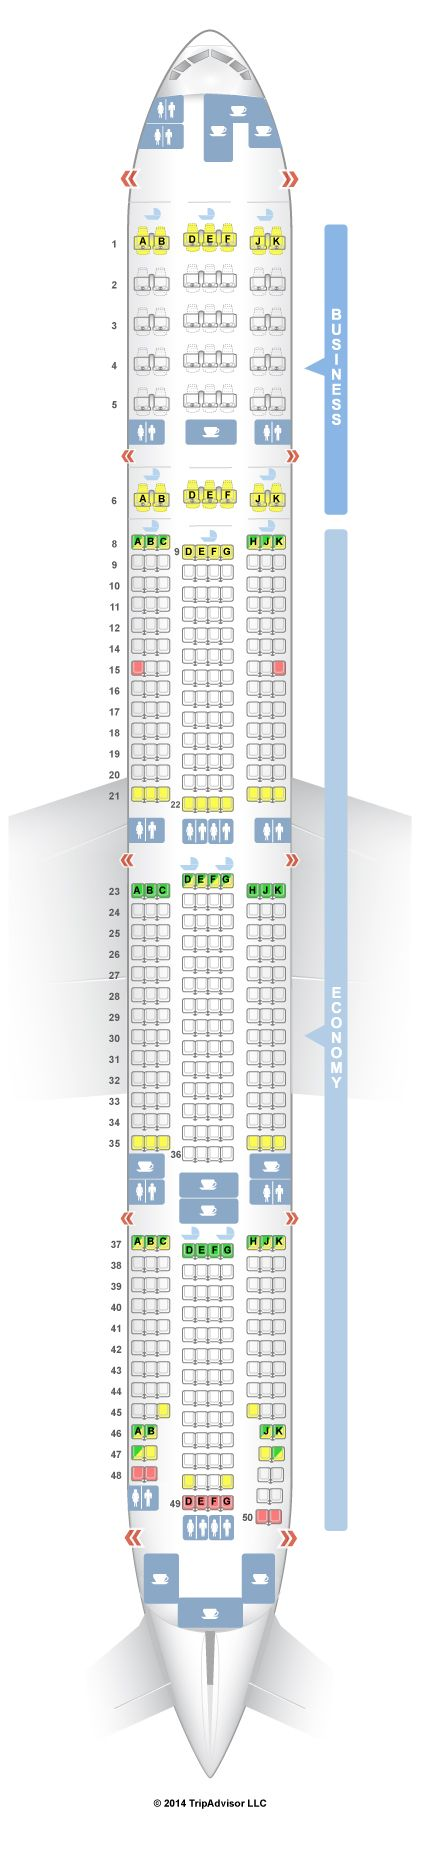 The Best Boeing Er Seating Ideas On Pinterest Boeing - Japan airlines seat map 773